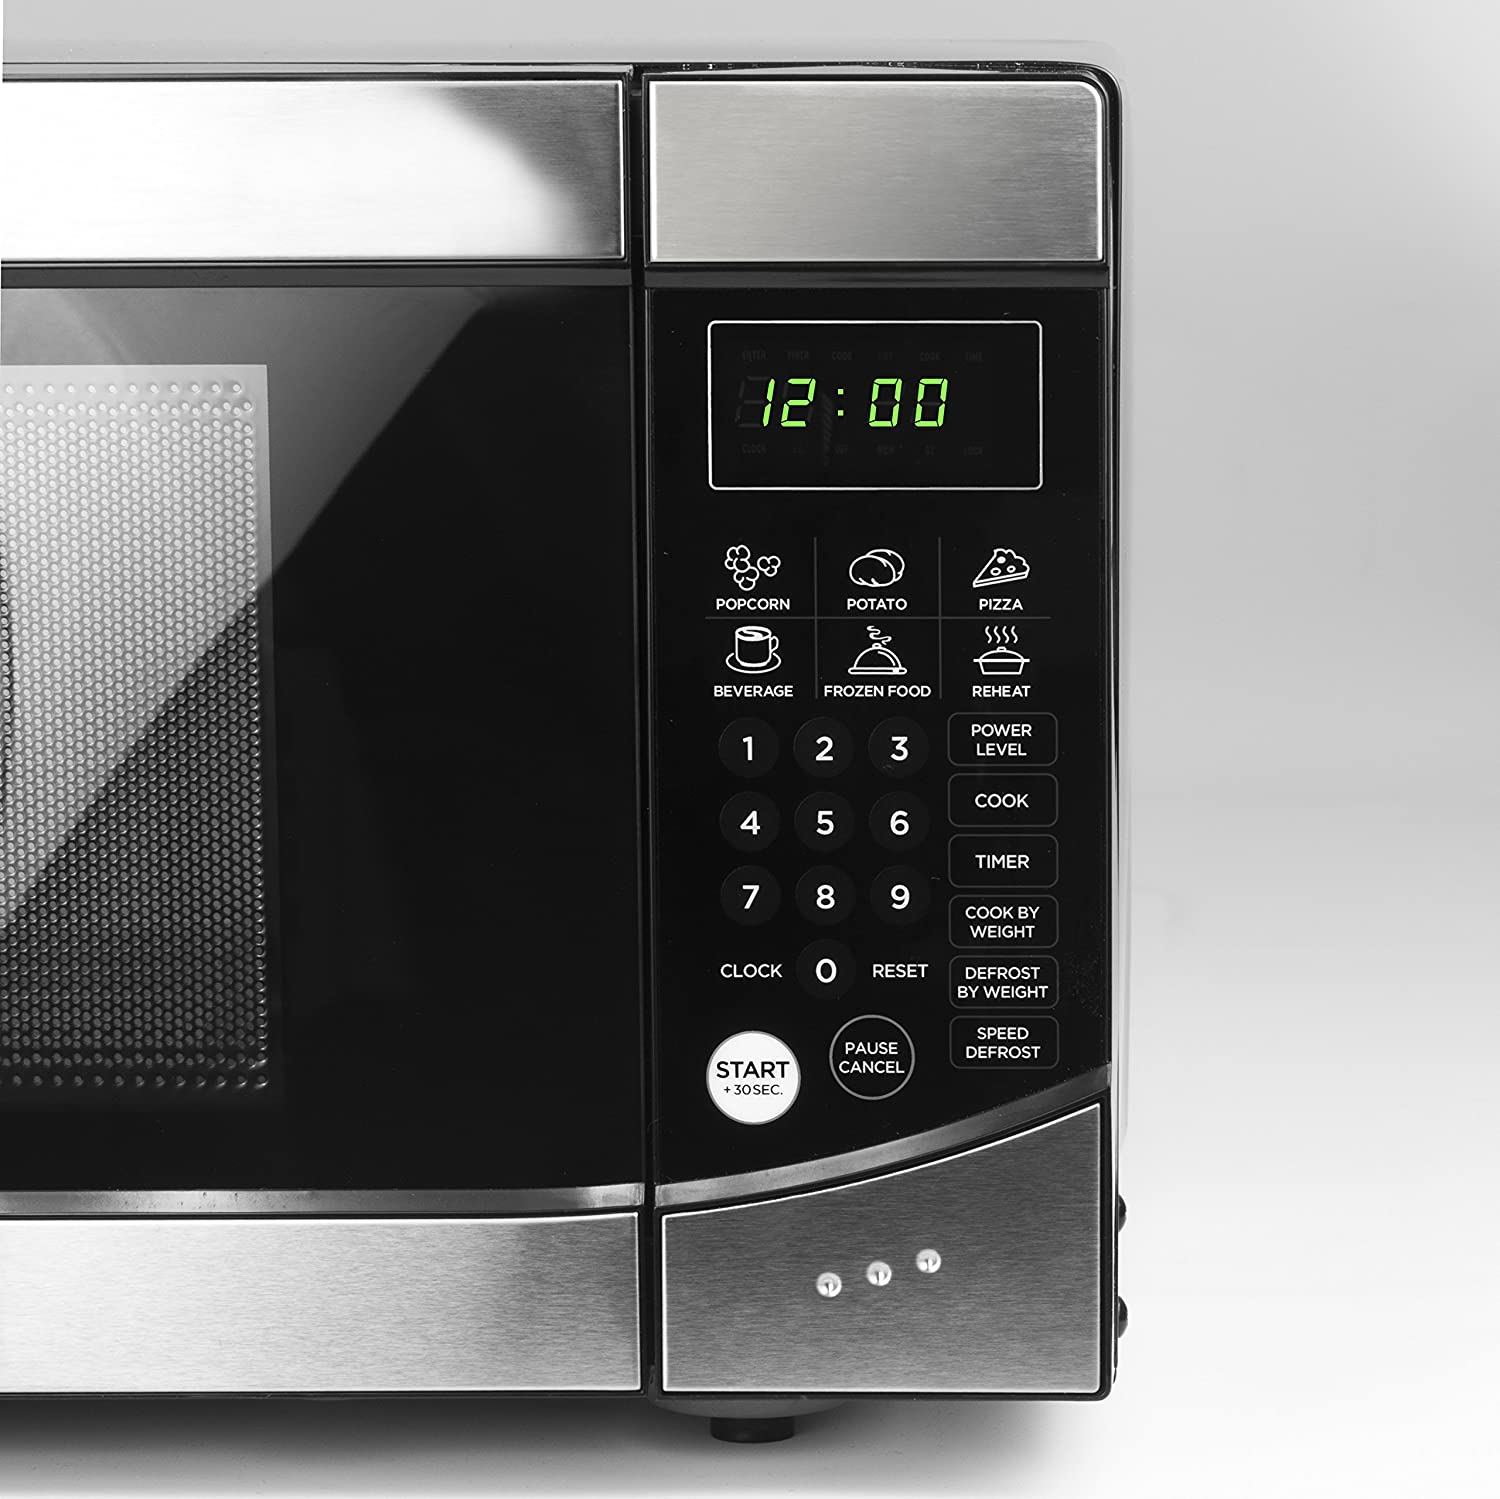 Amazon.com: Westinghouse WM009 900 Watt Counter Top Microwave Oven ...